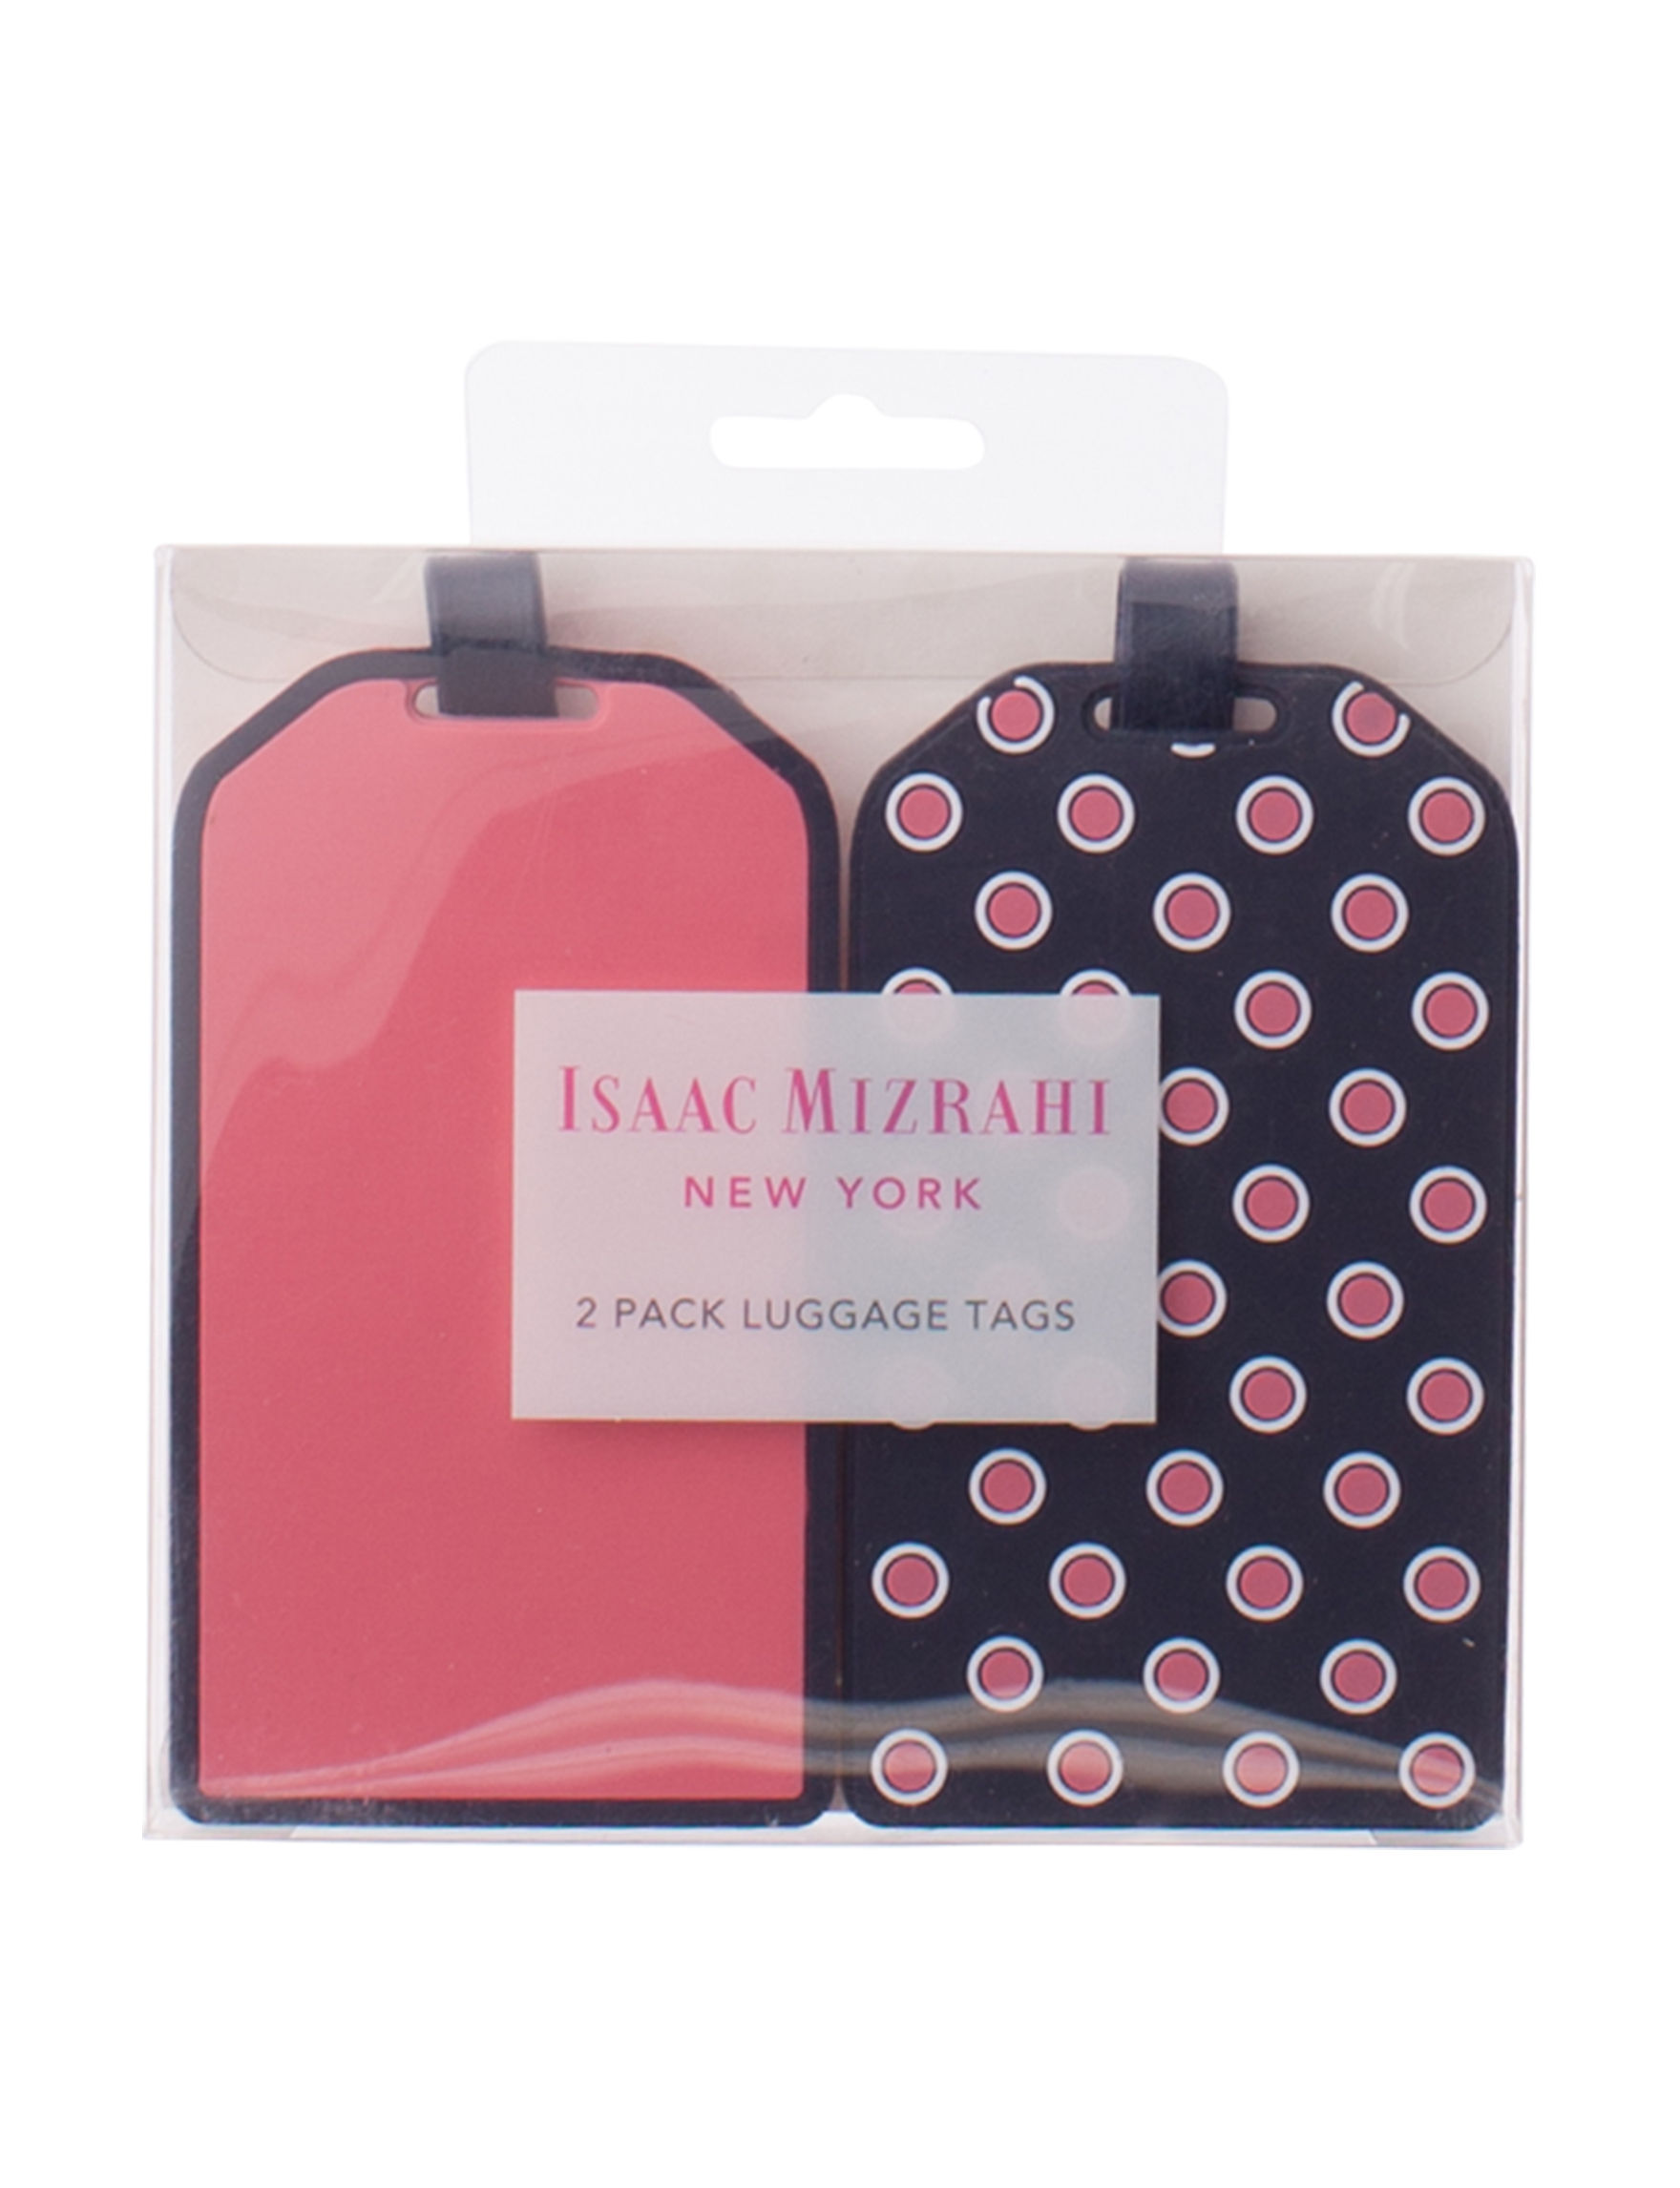 Isaac Mizrahi Pink Luggage Sets Travel Accessories